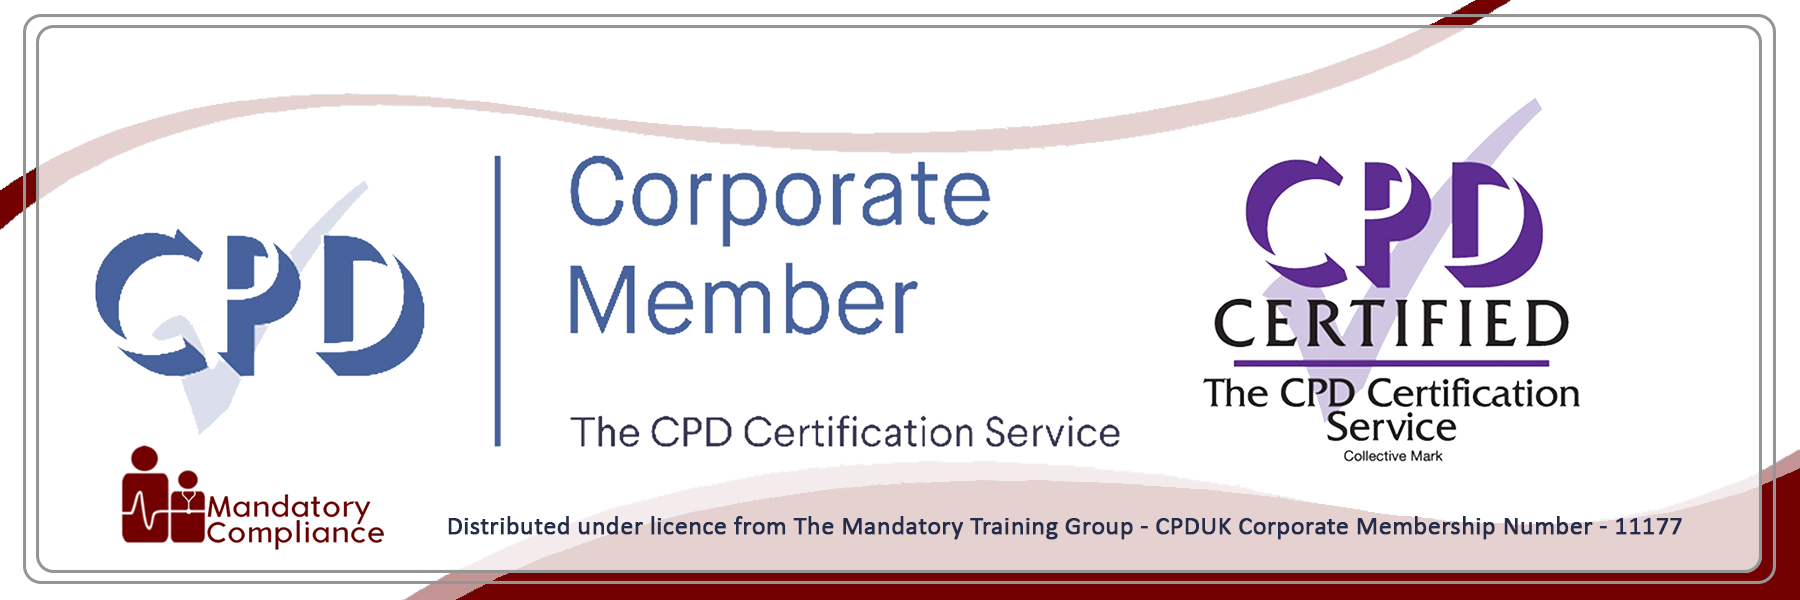 Recognising the signs of neglect, abuse or harm - Online-Training-Course-CPD-Accredited-Mandatory-Compliance-UK-